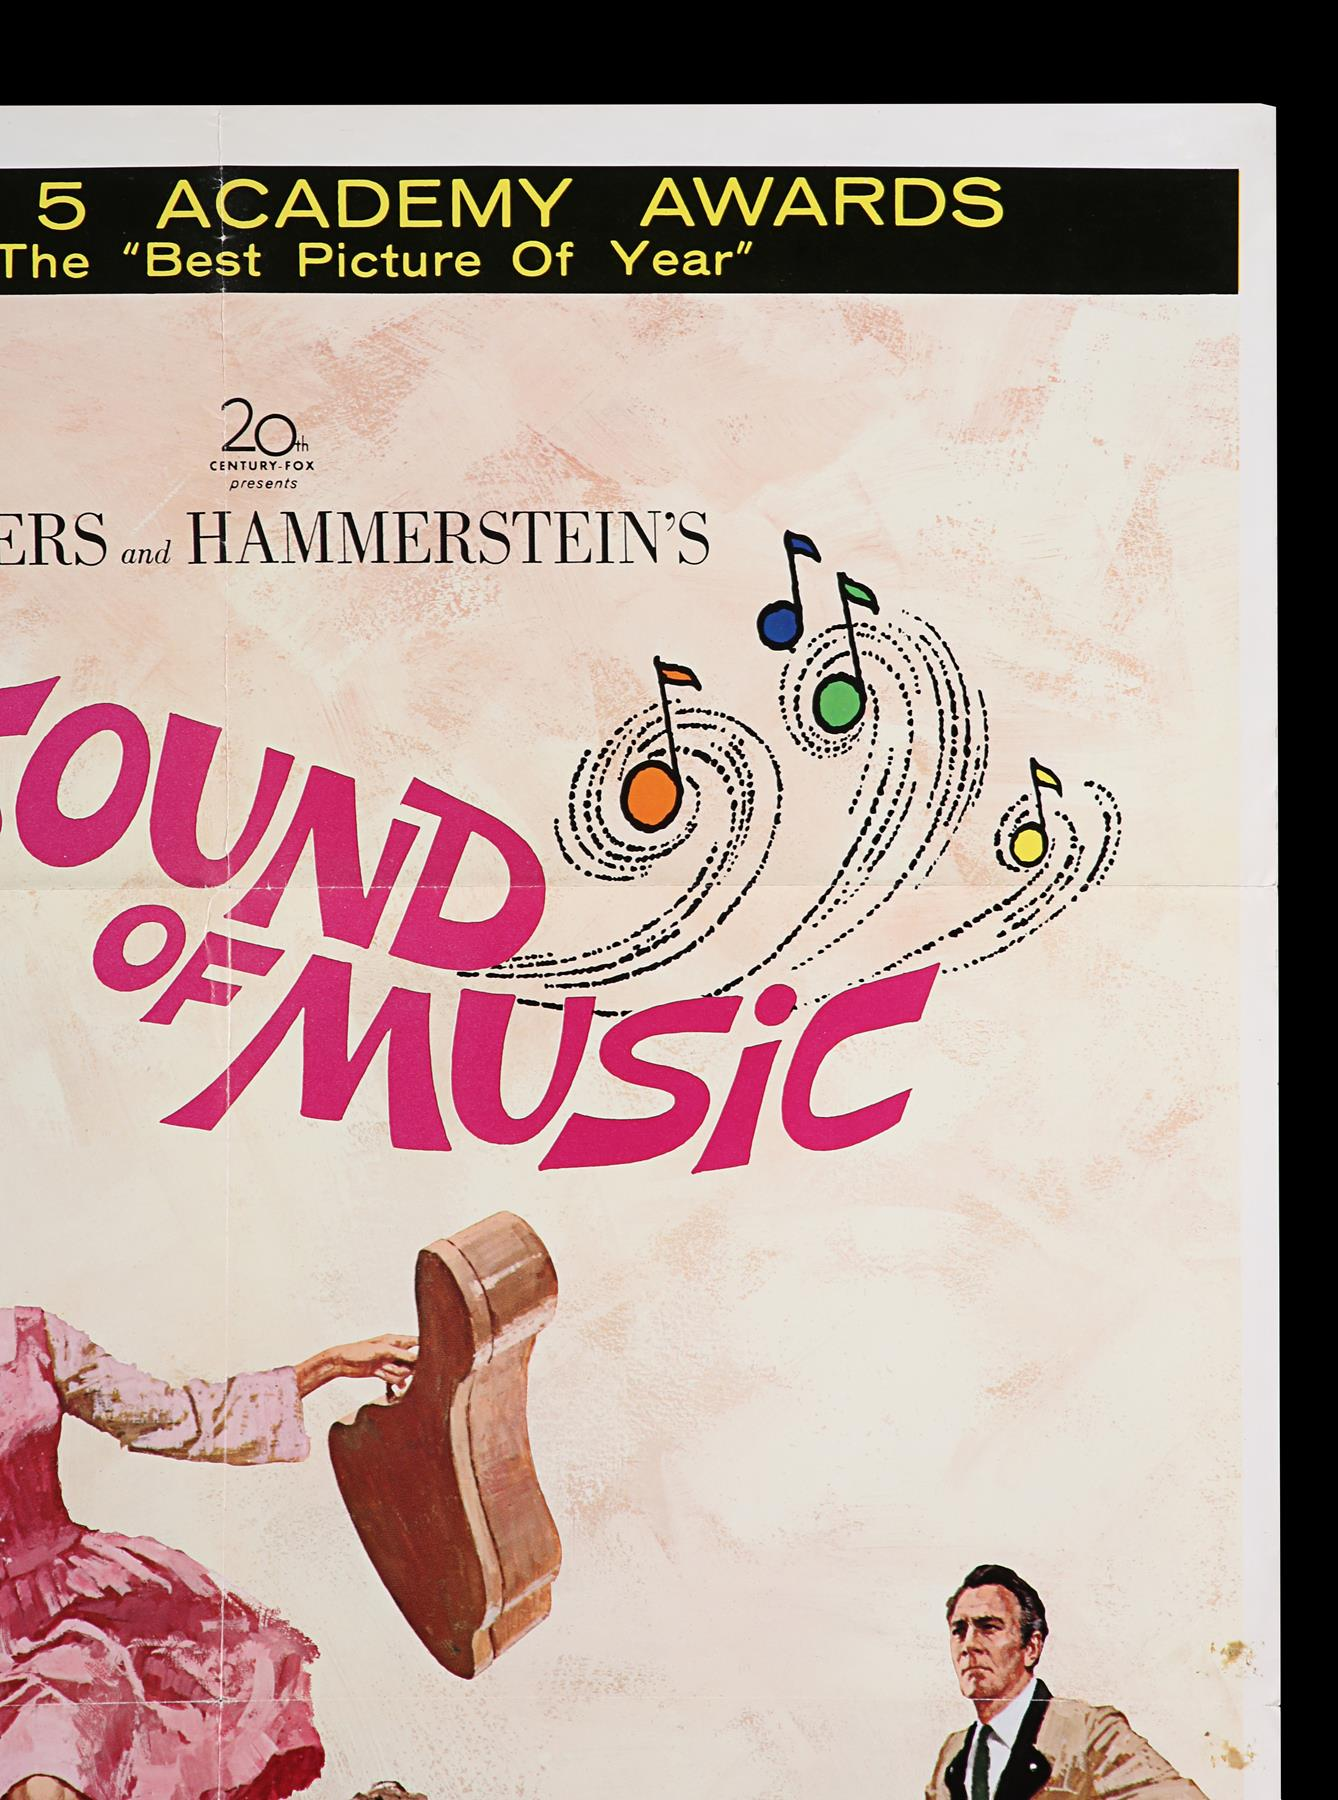 THE SOUND OF MUSIC (1965) - US One-Sheet, 1965 - Image 3 of 7